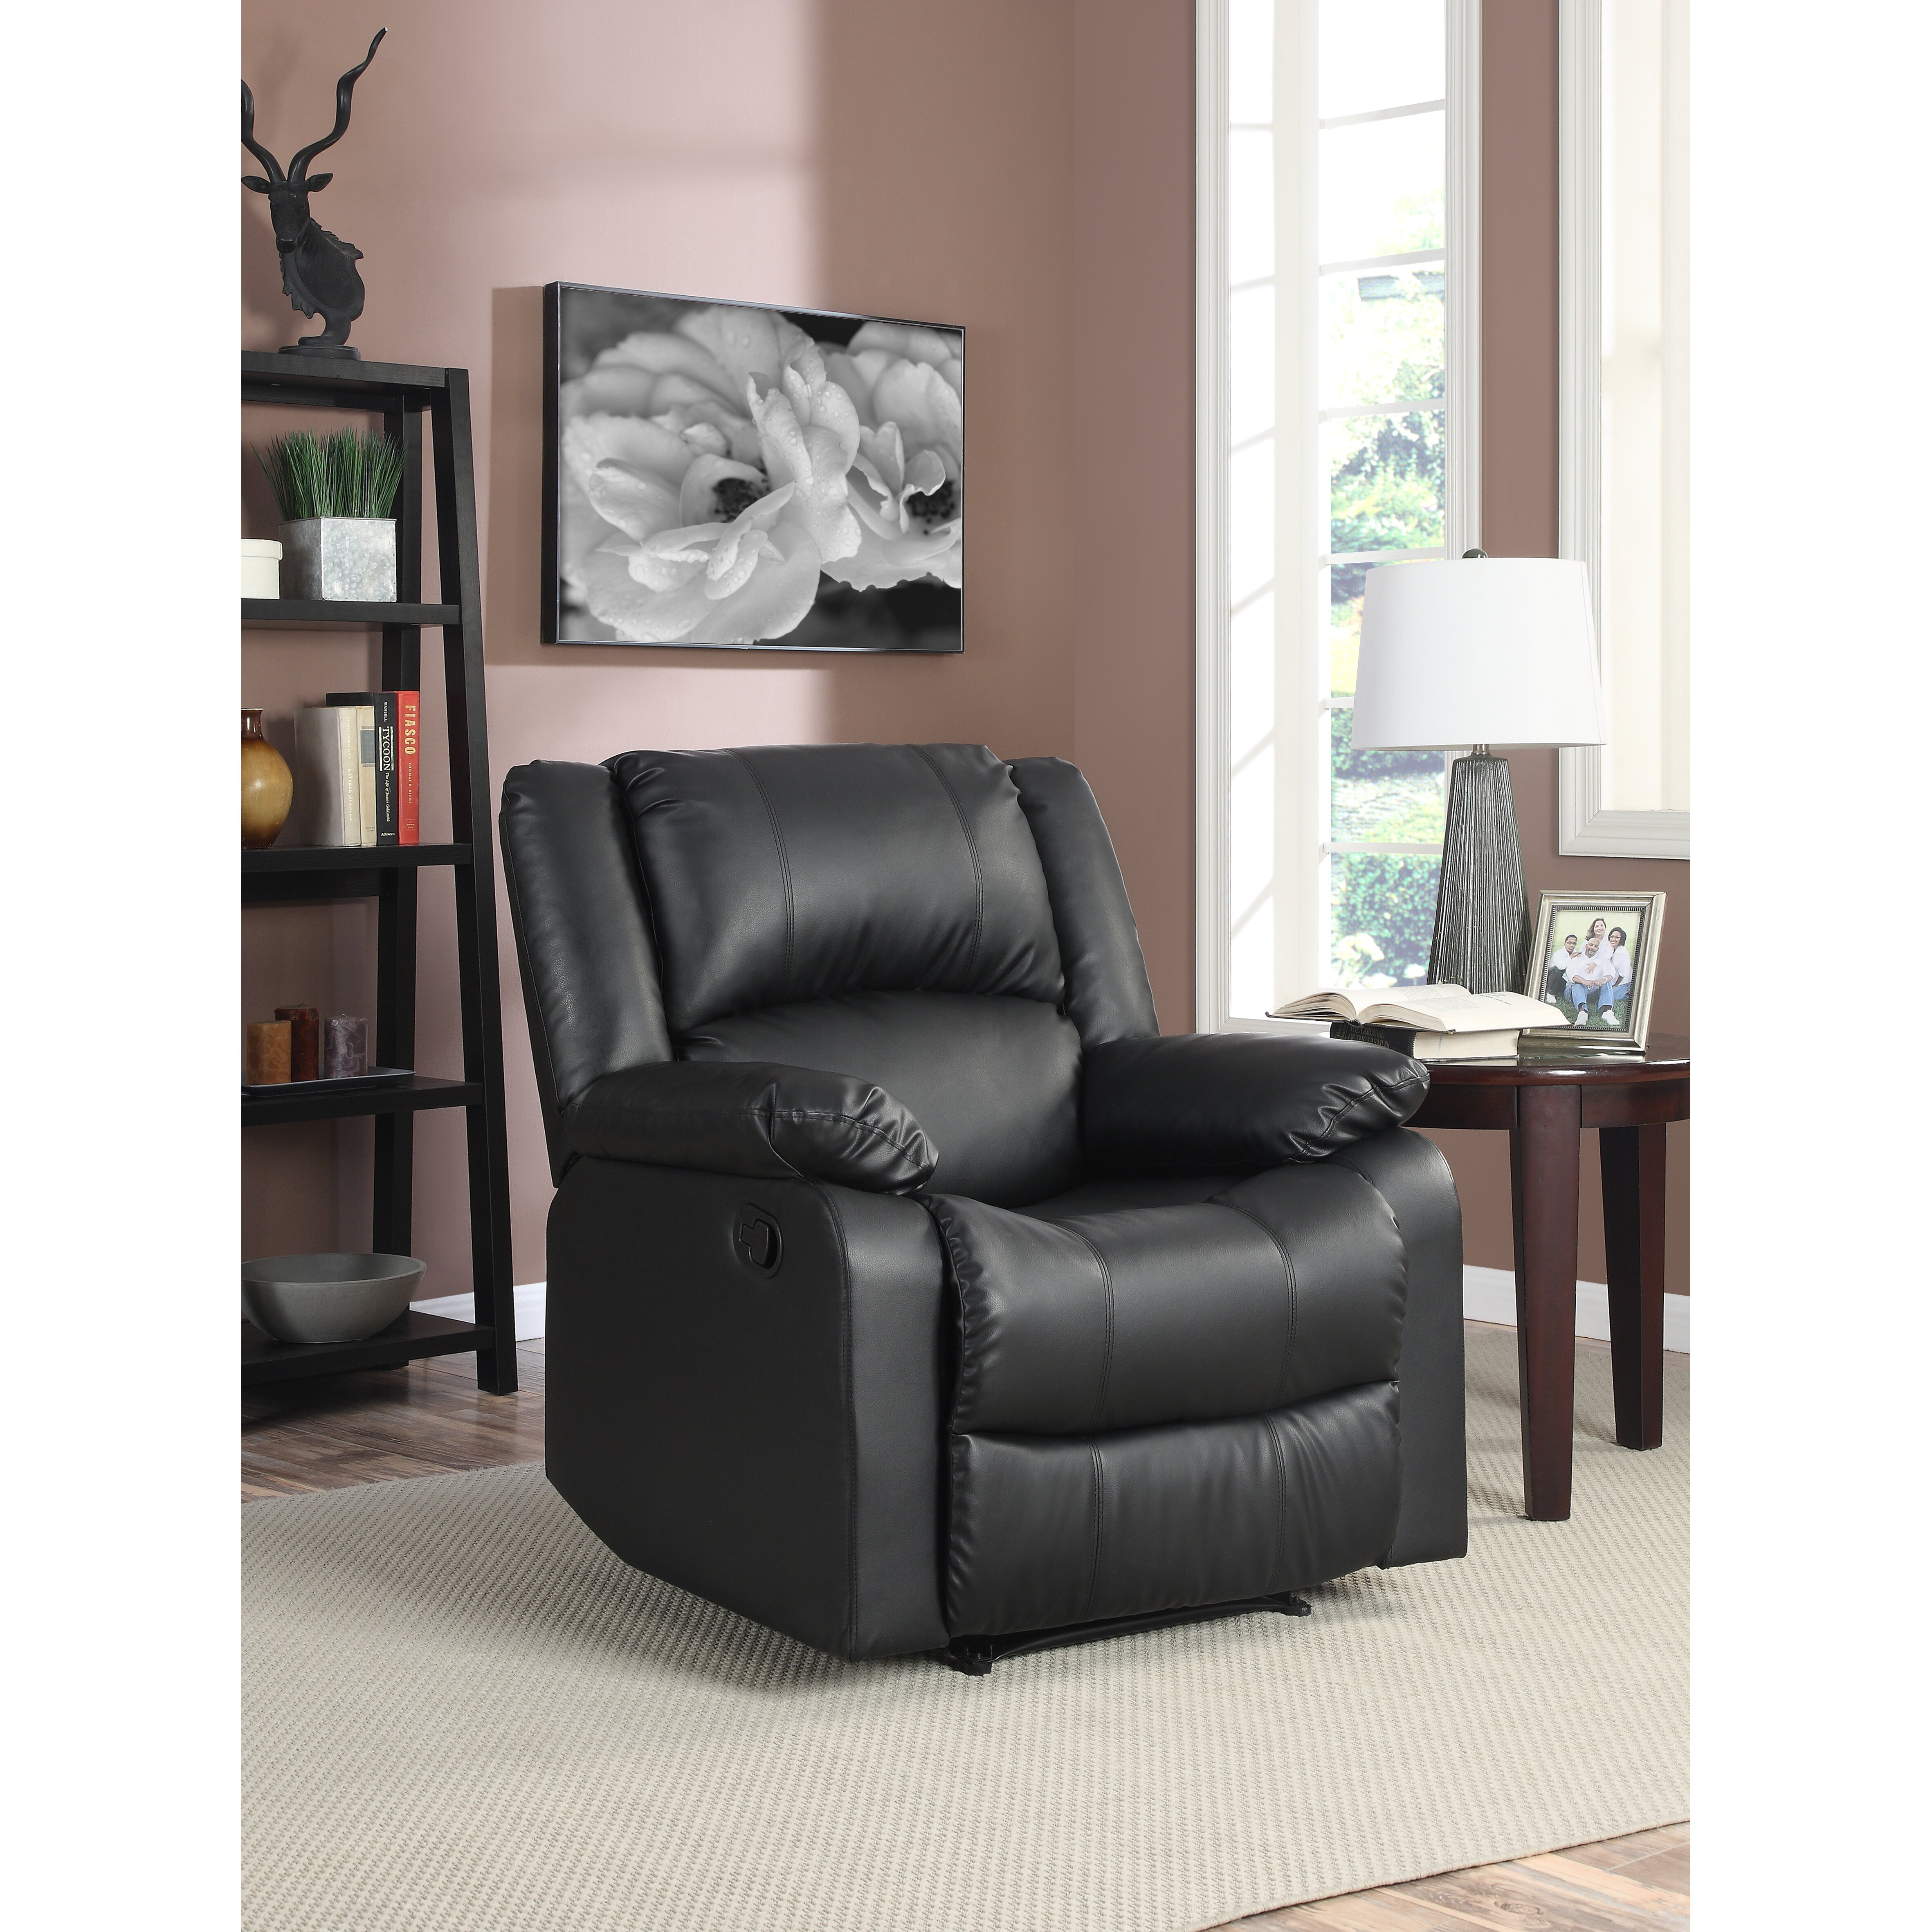 LifeStyle Solutions Warren Recliner